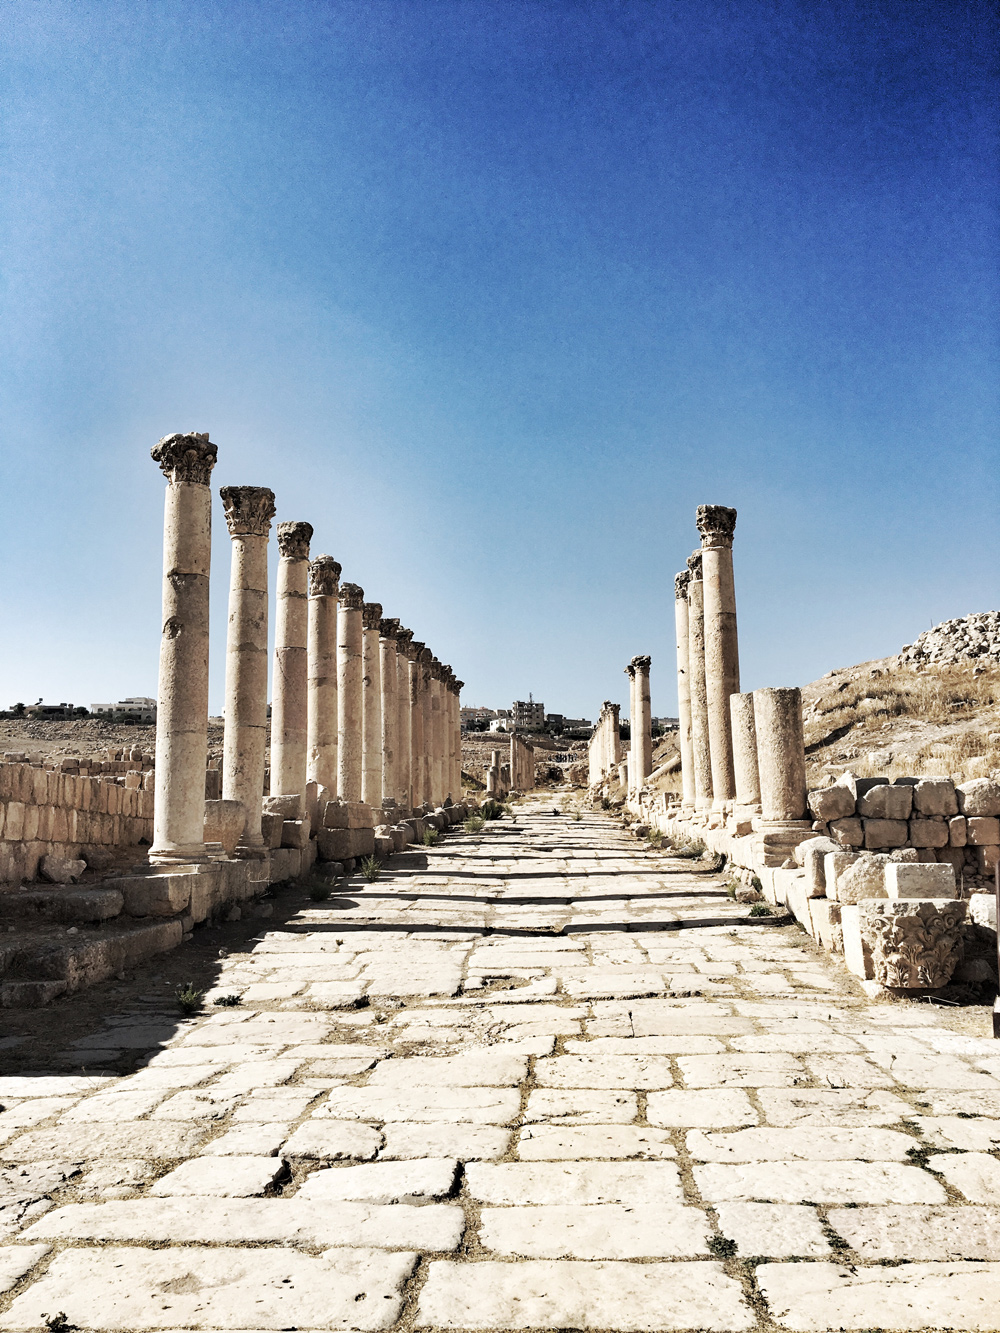 The 600m Cardo / Colonnaded Street where vendors would set up shop and key buildings would have been located